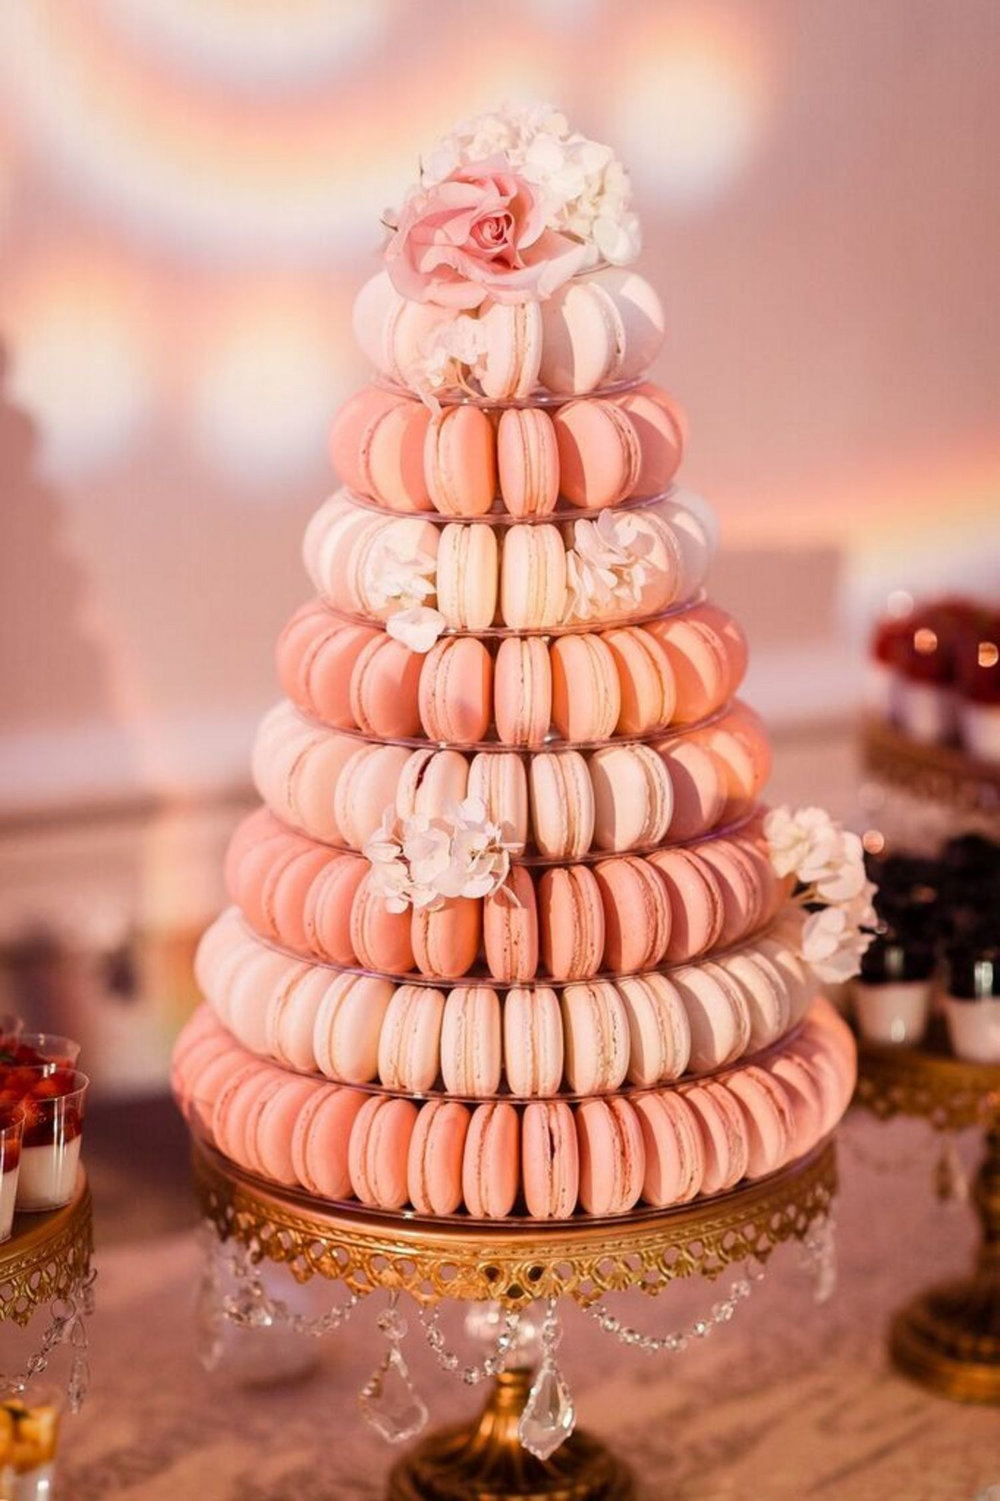 weddings macaron tower opulent treasures cake stand mp singh photography.jpg